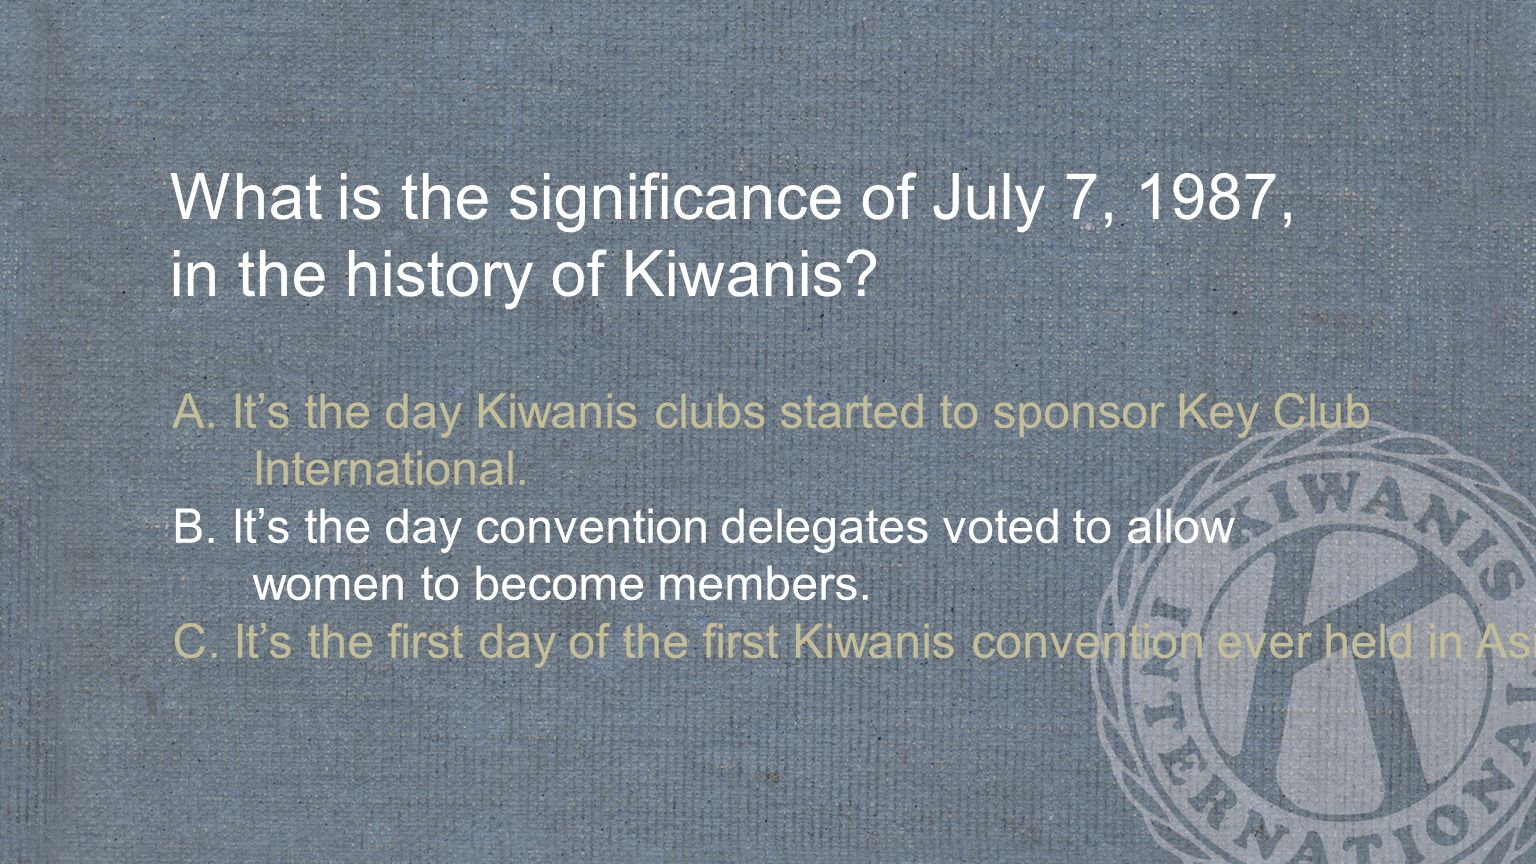 What is the significance of July 7, 1987, in the history of Kiwanis